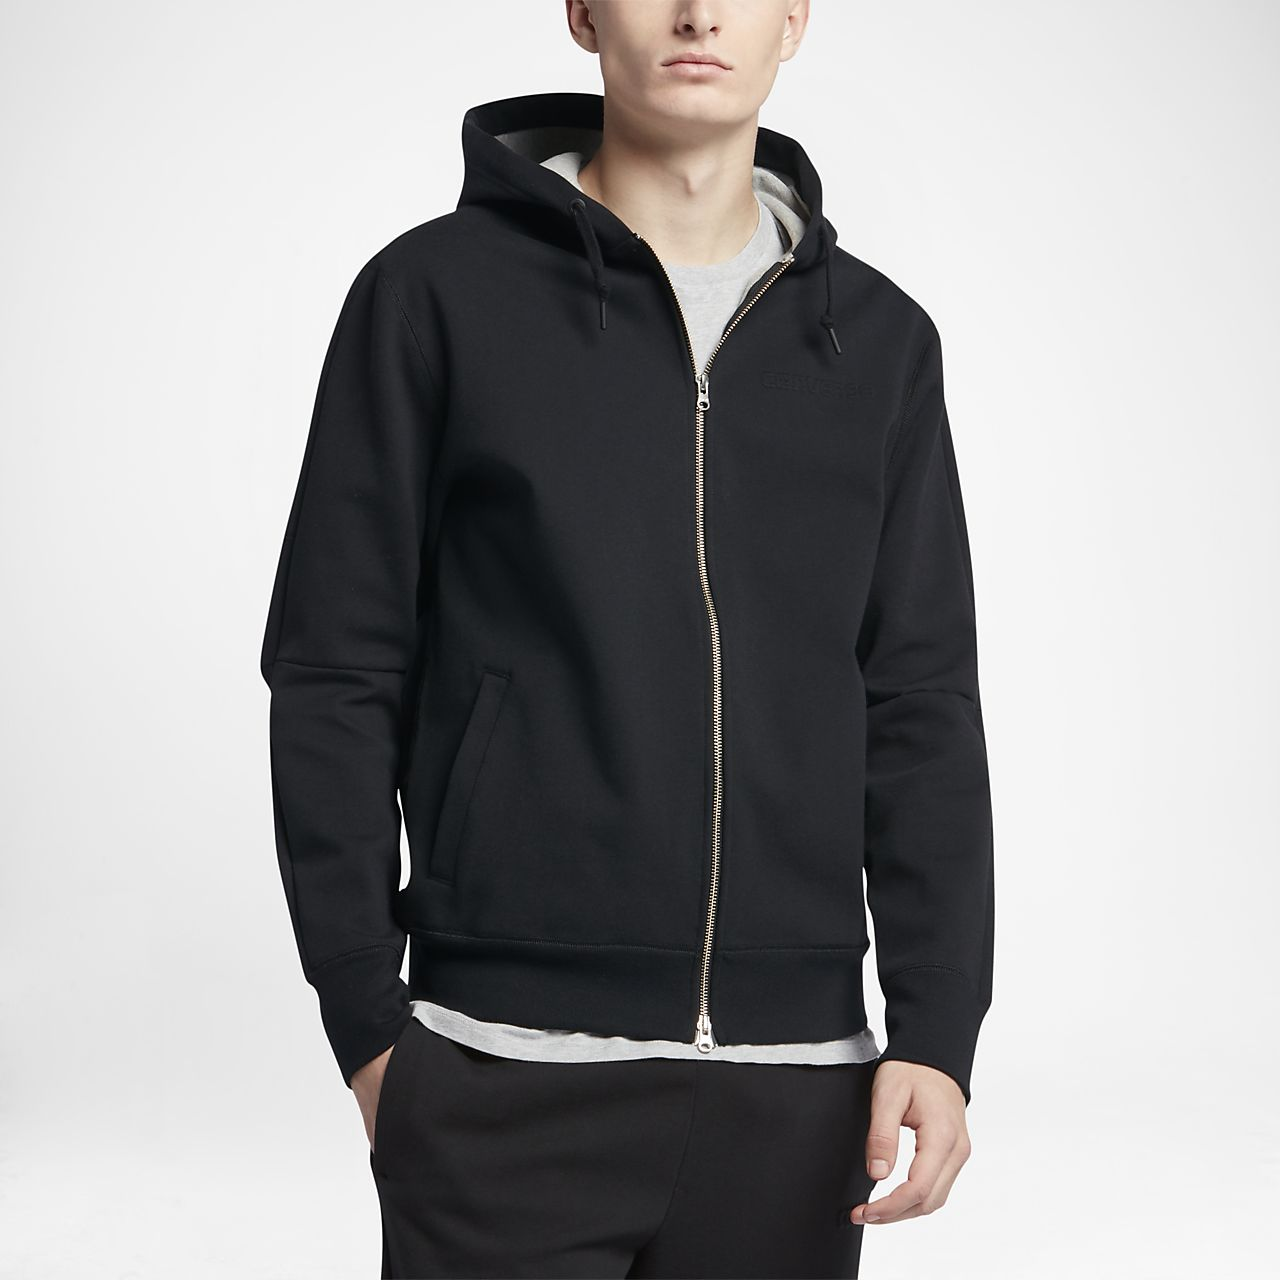 Converse Counter Climate Men's Full Zip Hoodie Men's Full Zip Hoodies Black